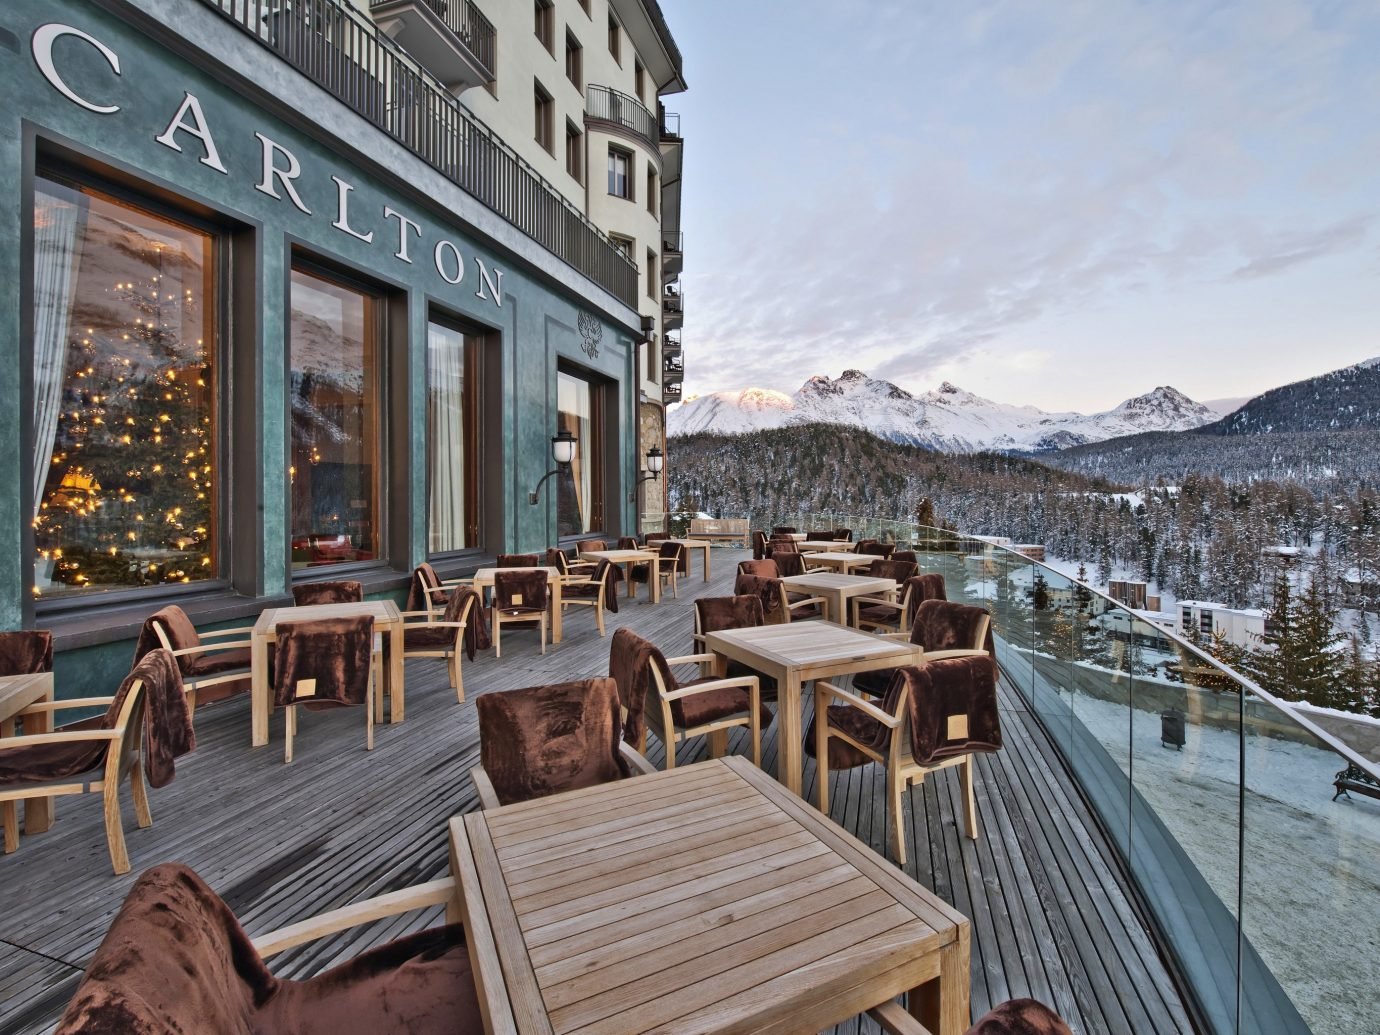 Outdoor dining at Carlton Hotel St. Moritz